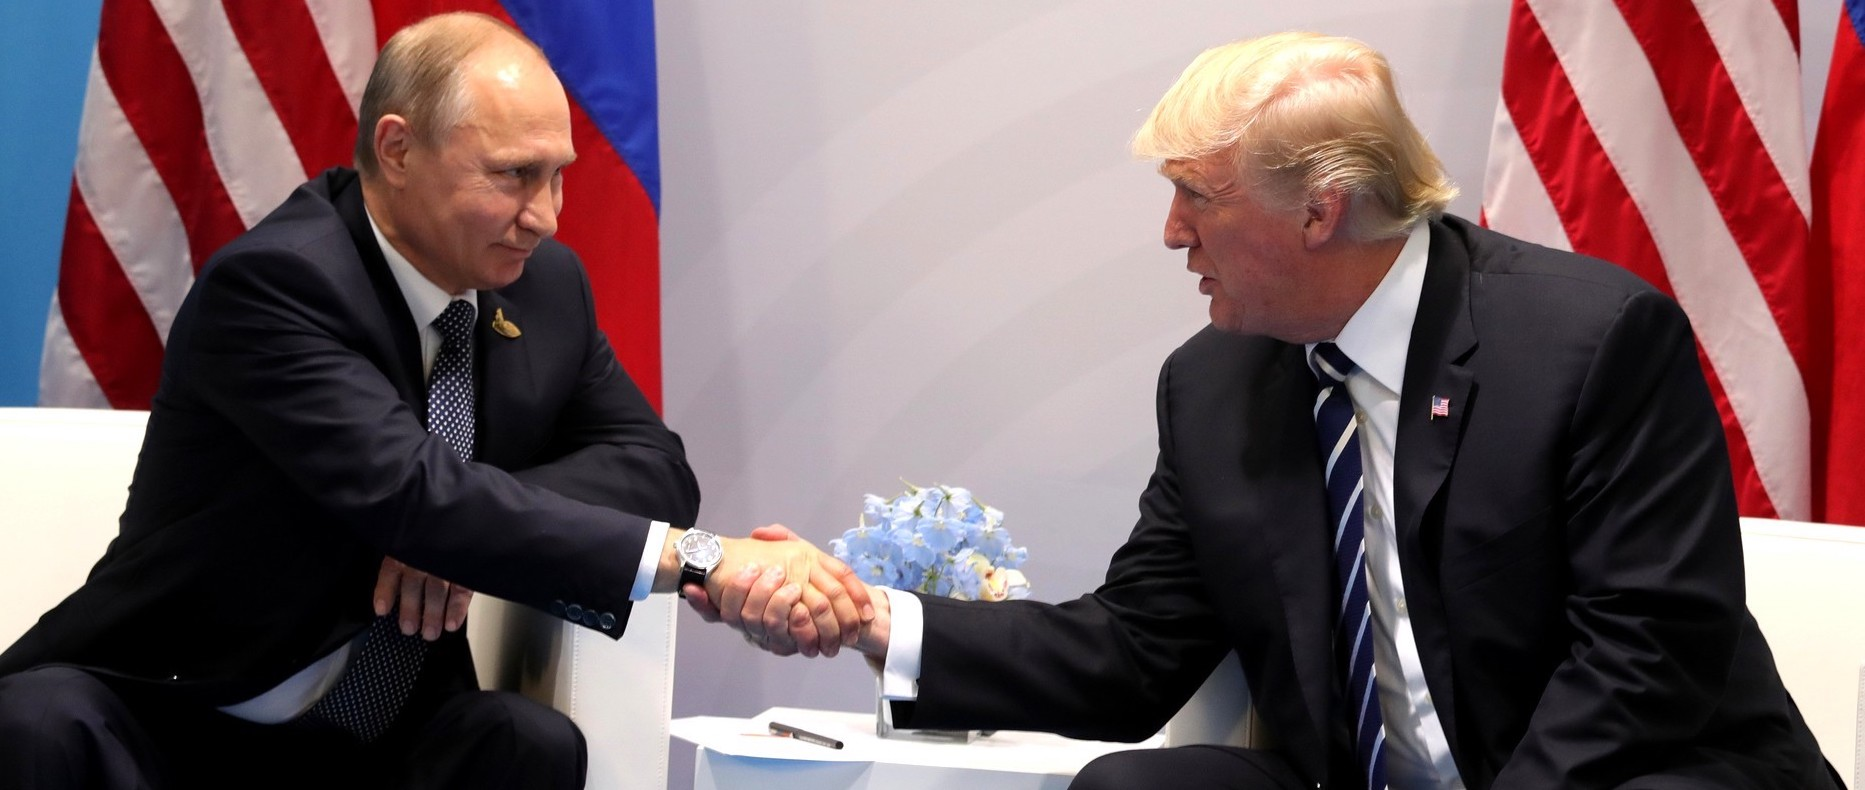 Partisan Dialogue on Russia Flipped Since the 2016 Election